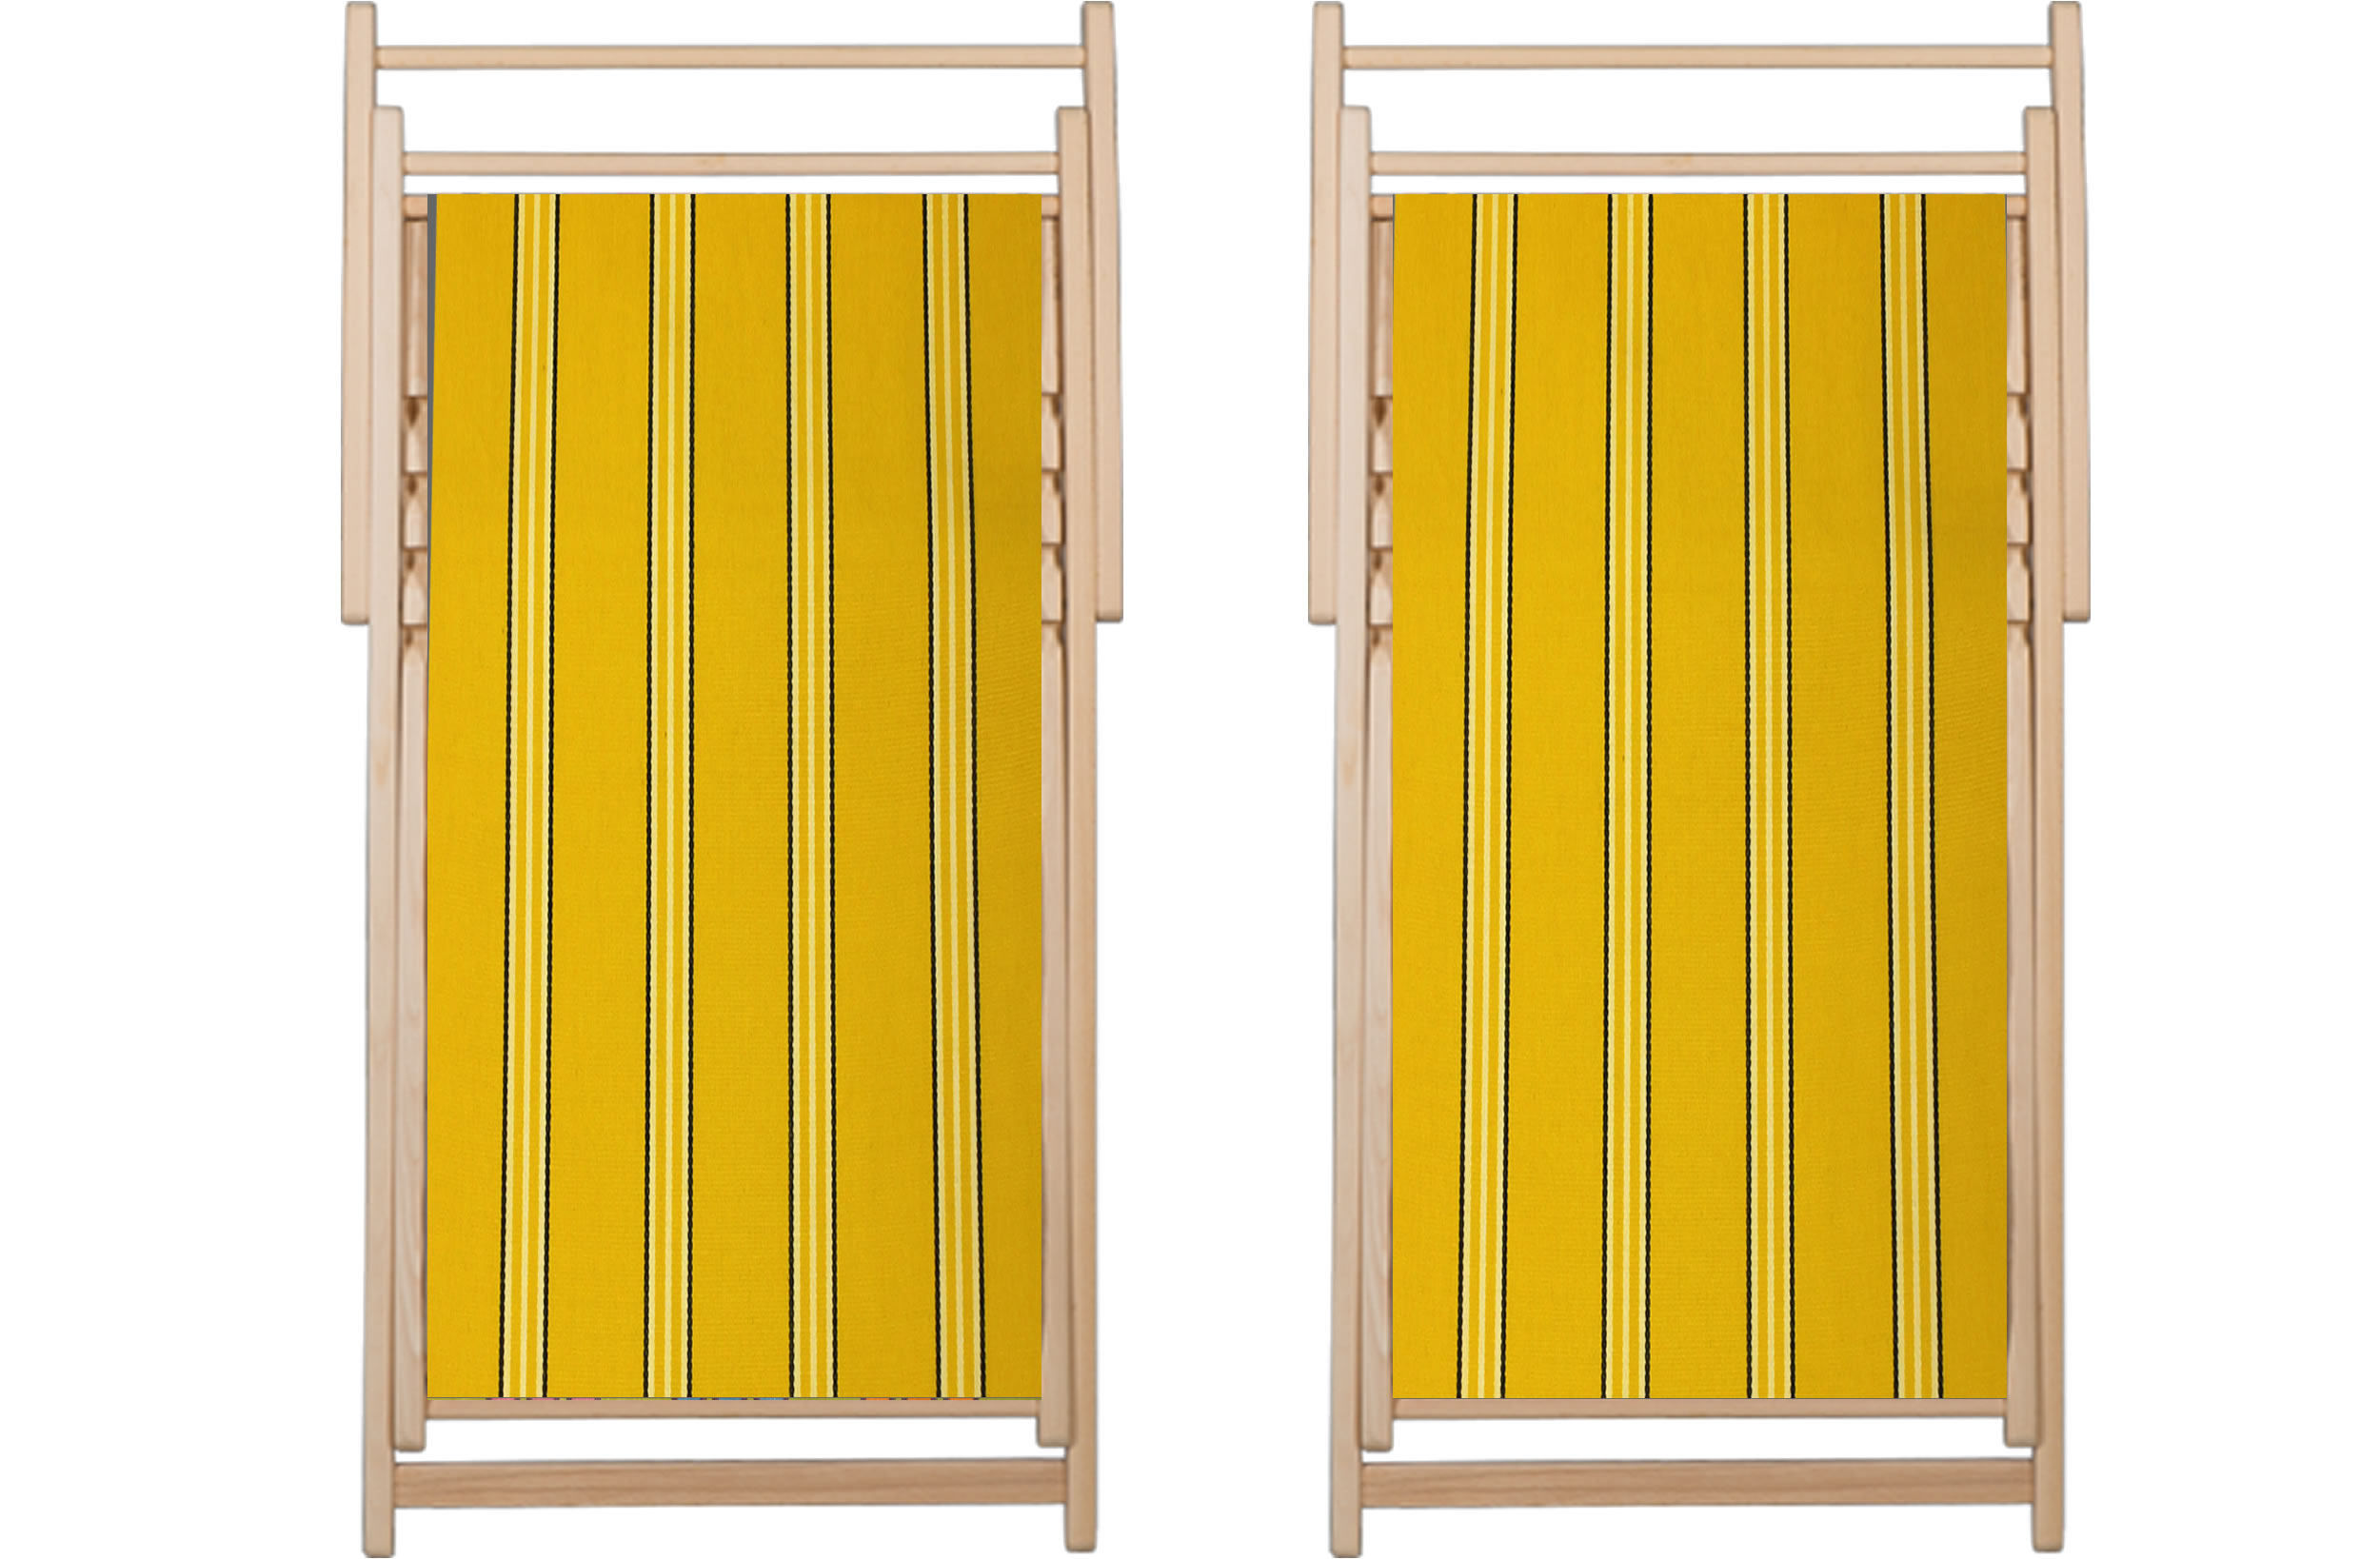 yellow, white, black- Classic Striped Deckchair Canvas Fabric - Thick Weave